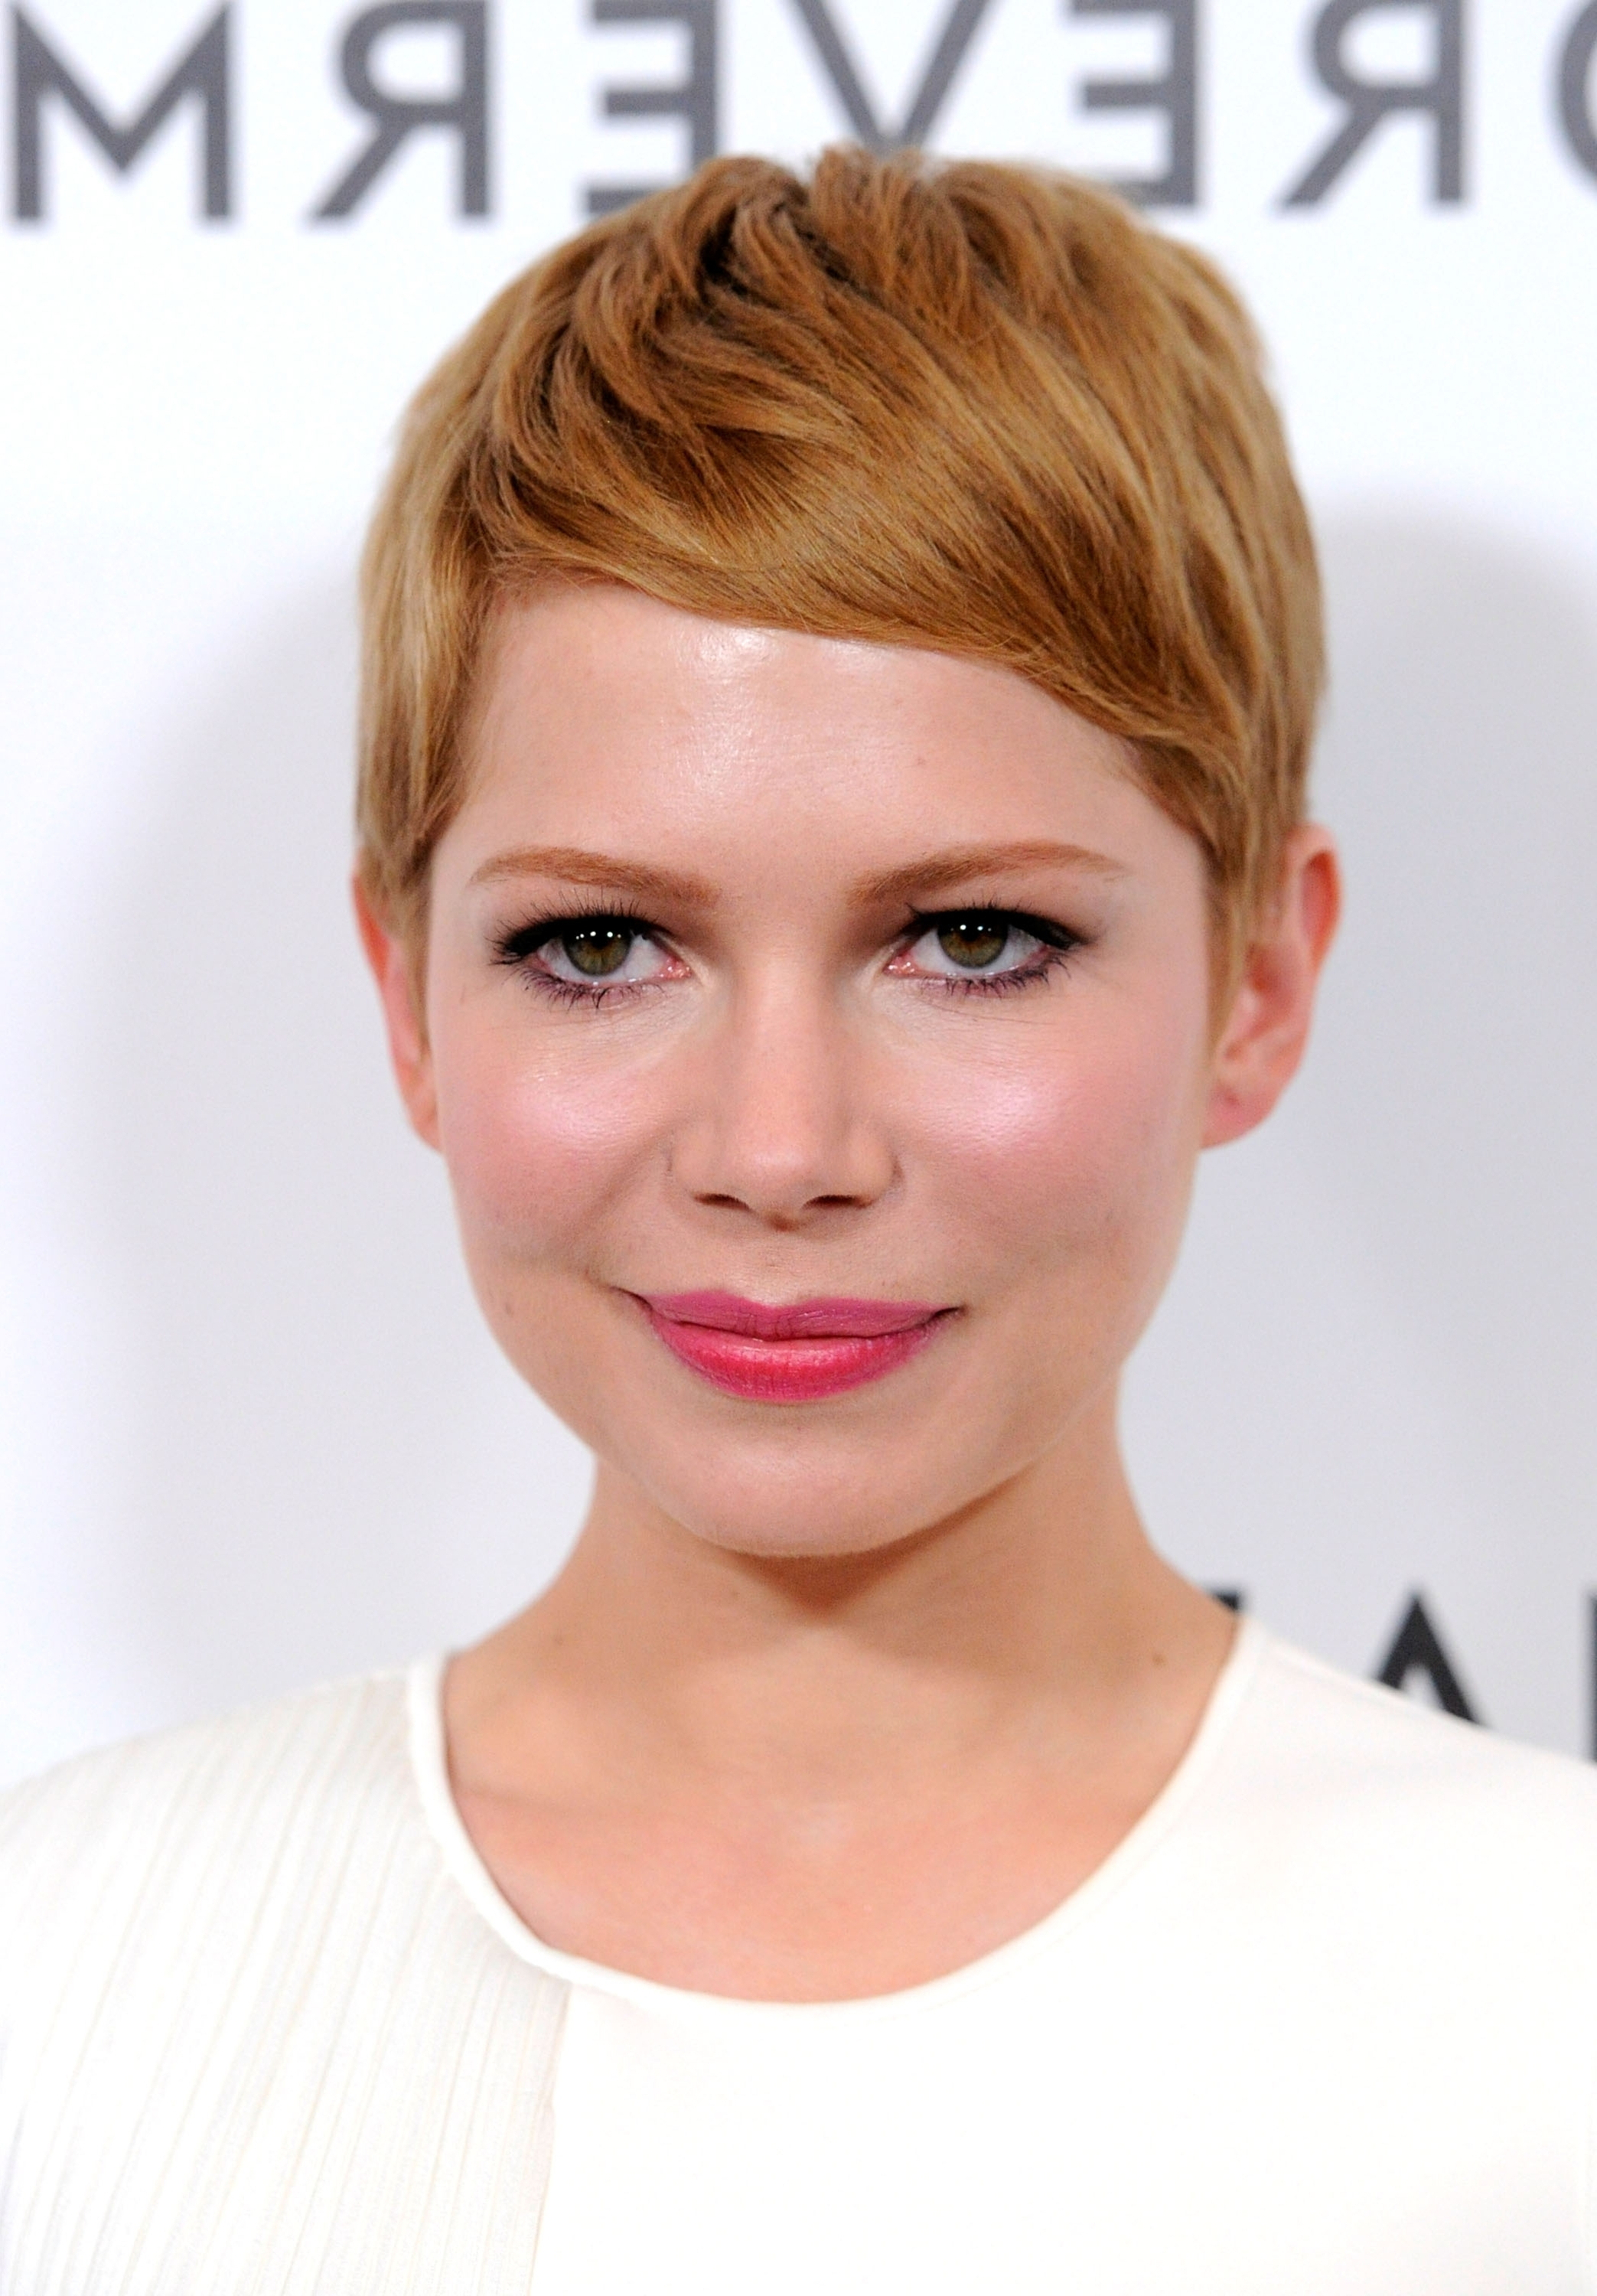 40 Best Short Pixie Cut Hairstyles 2018 – Cute Pixie Haircuts For Pertaining To Most Current Women Pixie Hairstyles (View 10 of 15)